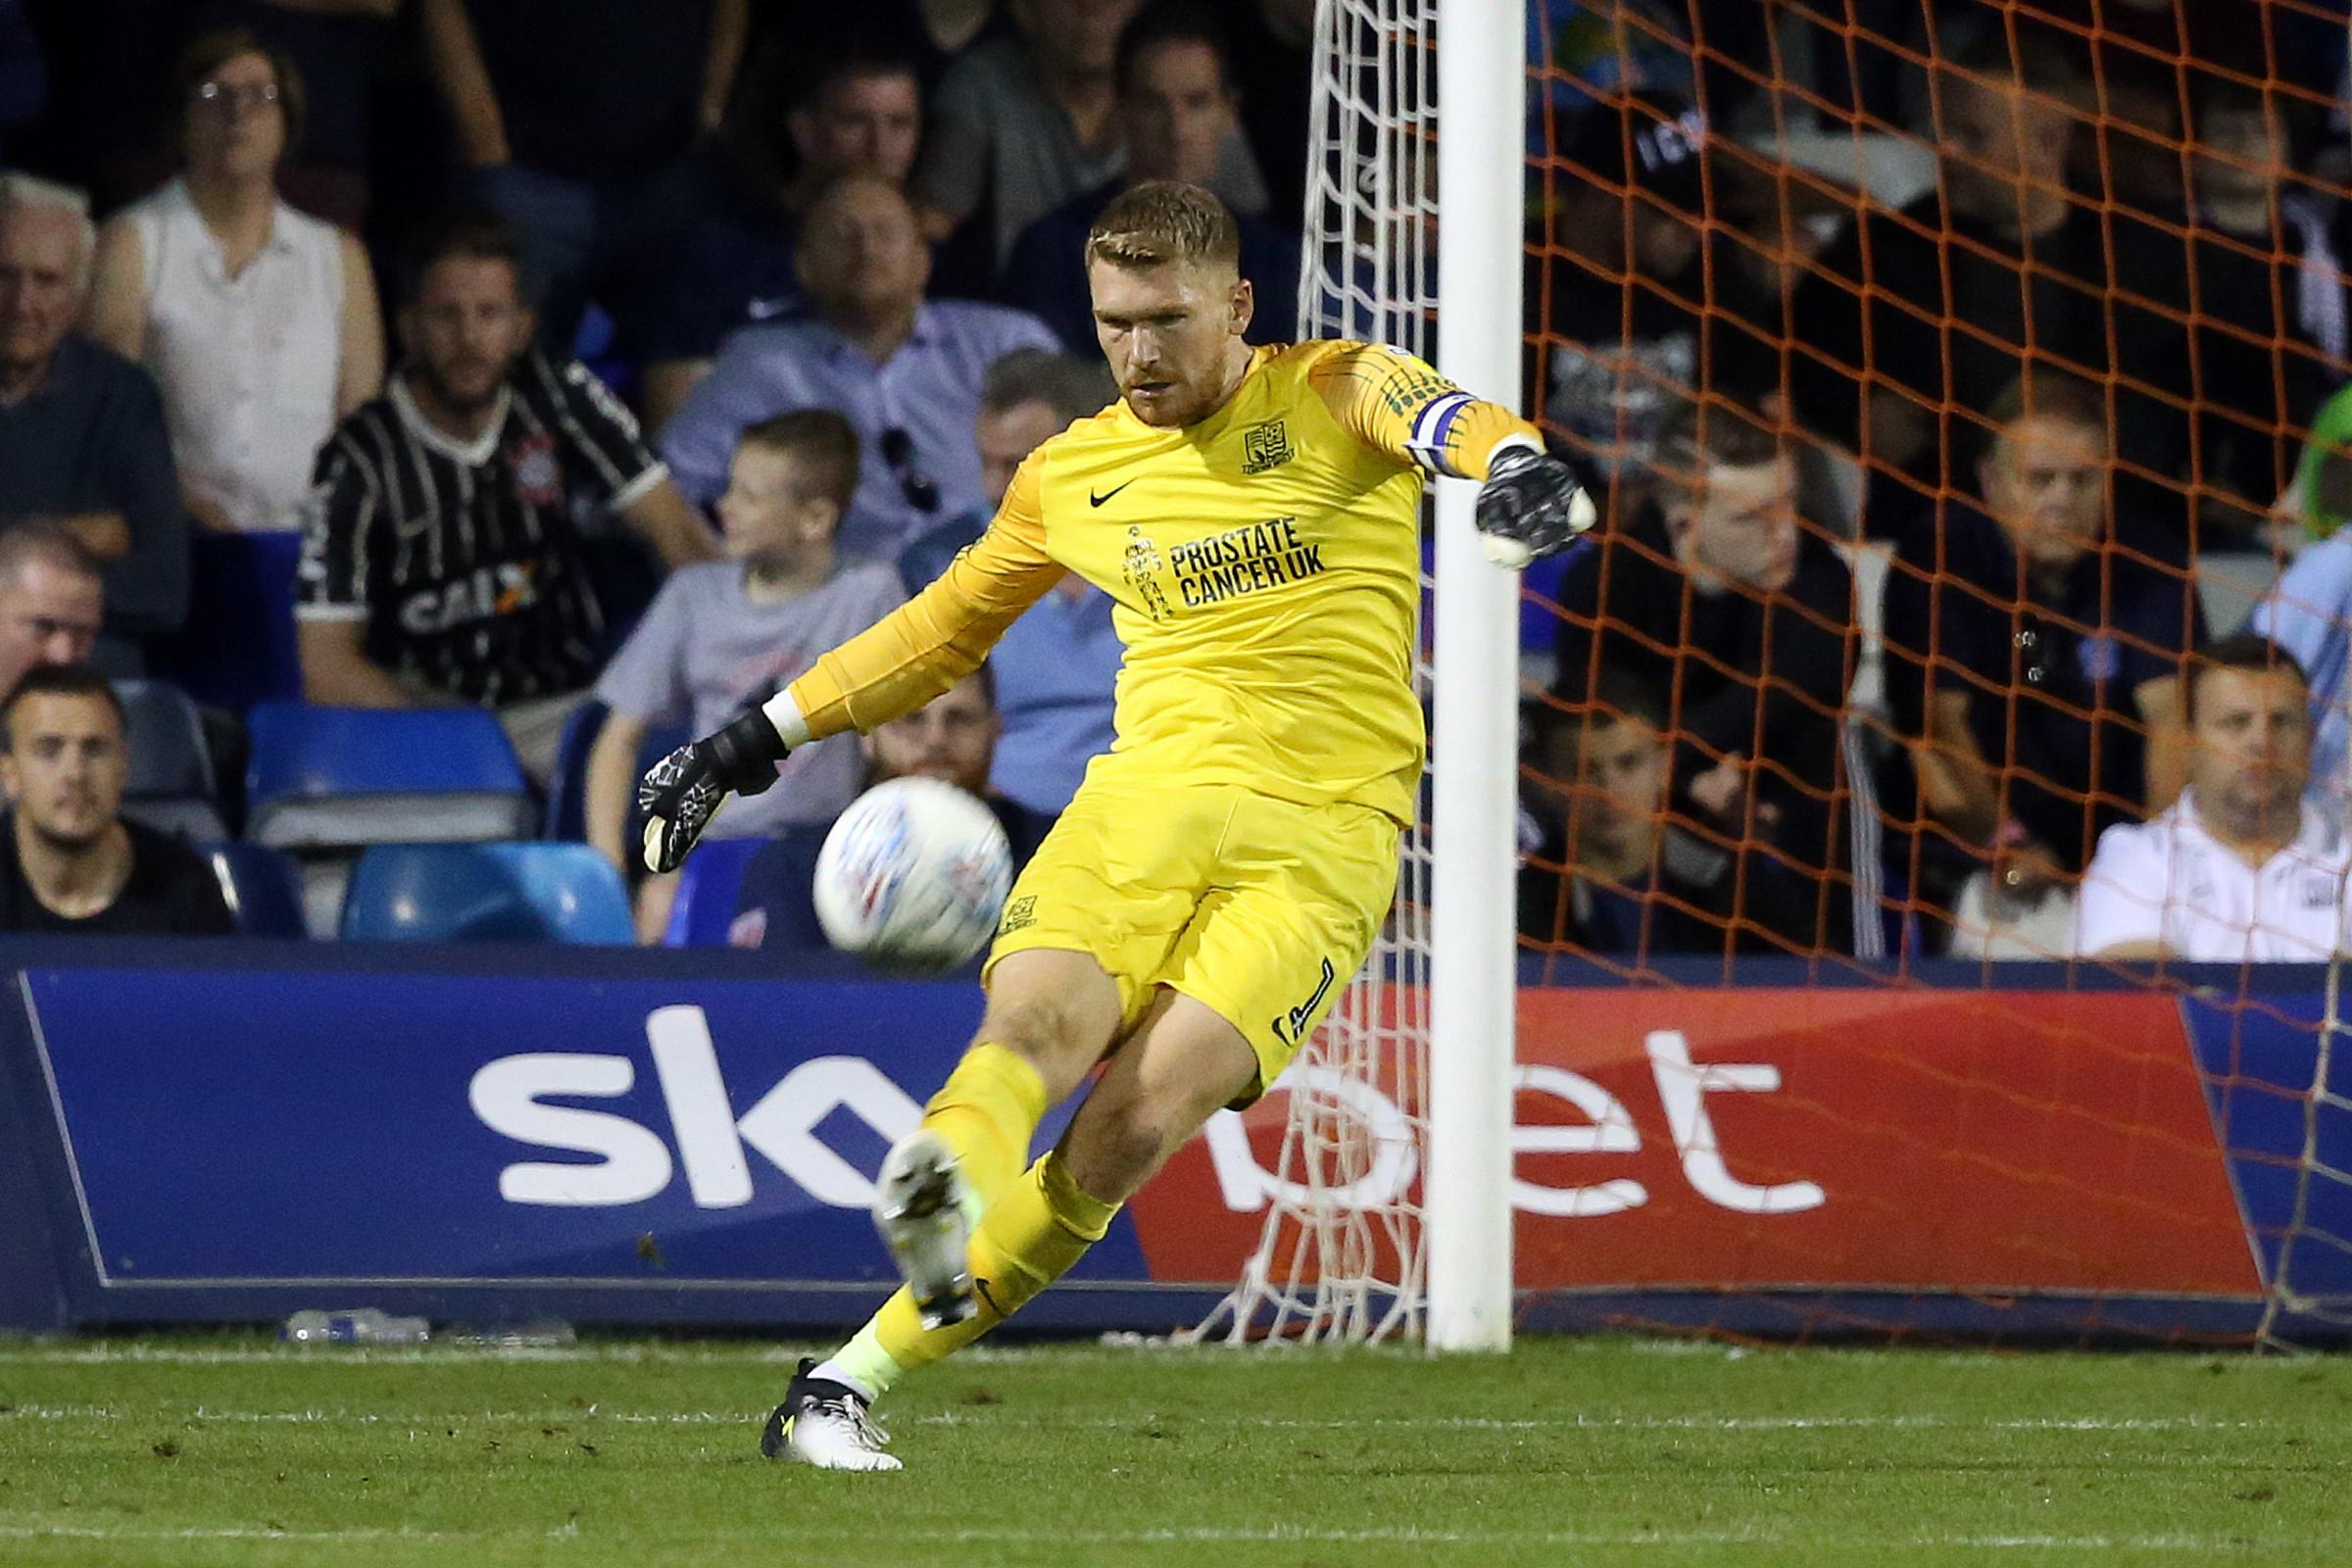 Close to returning - Southend United goalkeeper Mark Oxley